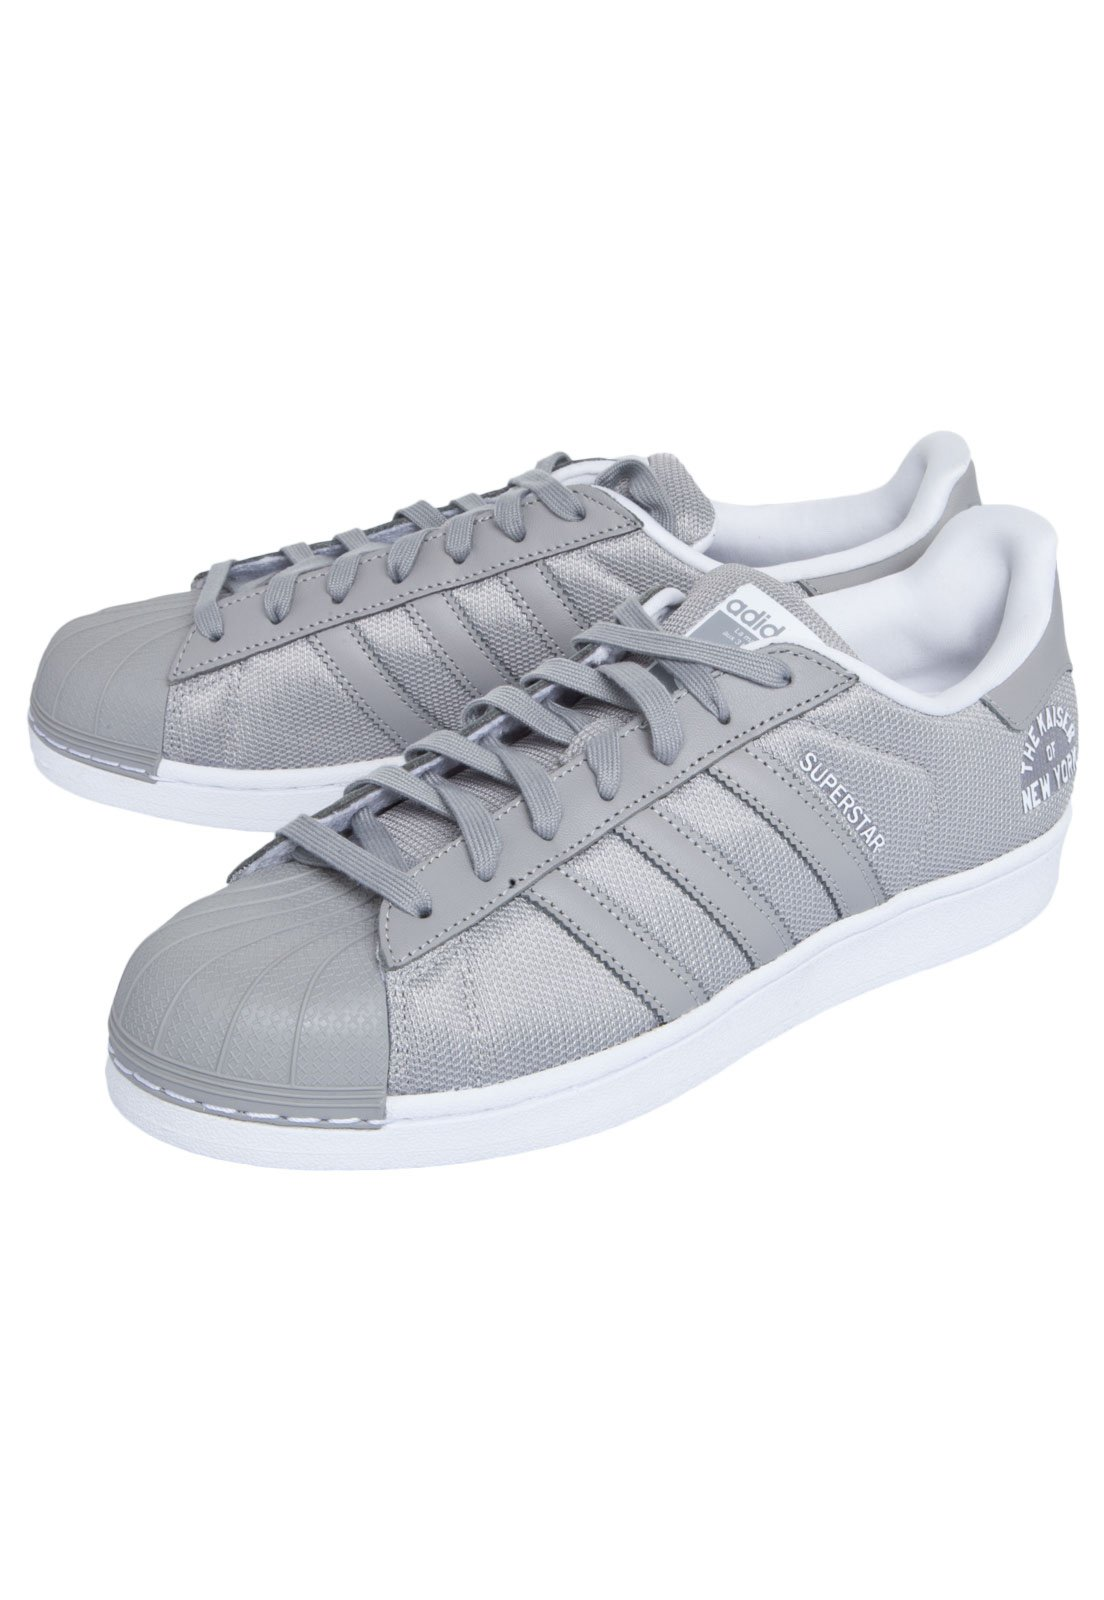 7280c8db9 Adidas Superstar Infantil aoriginal.co.uk